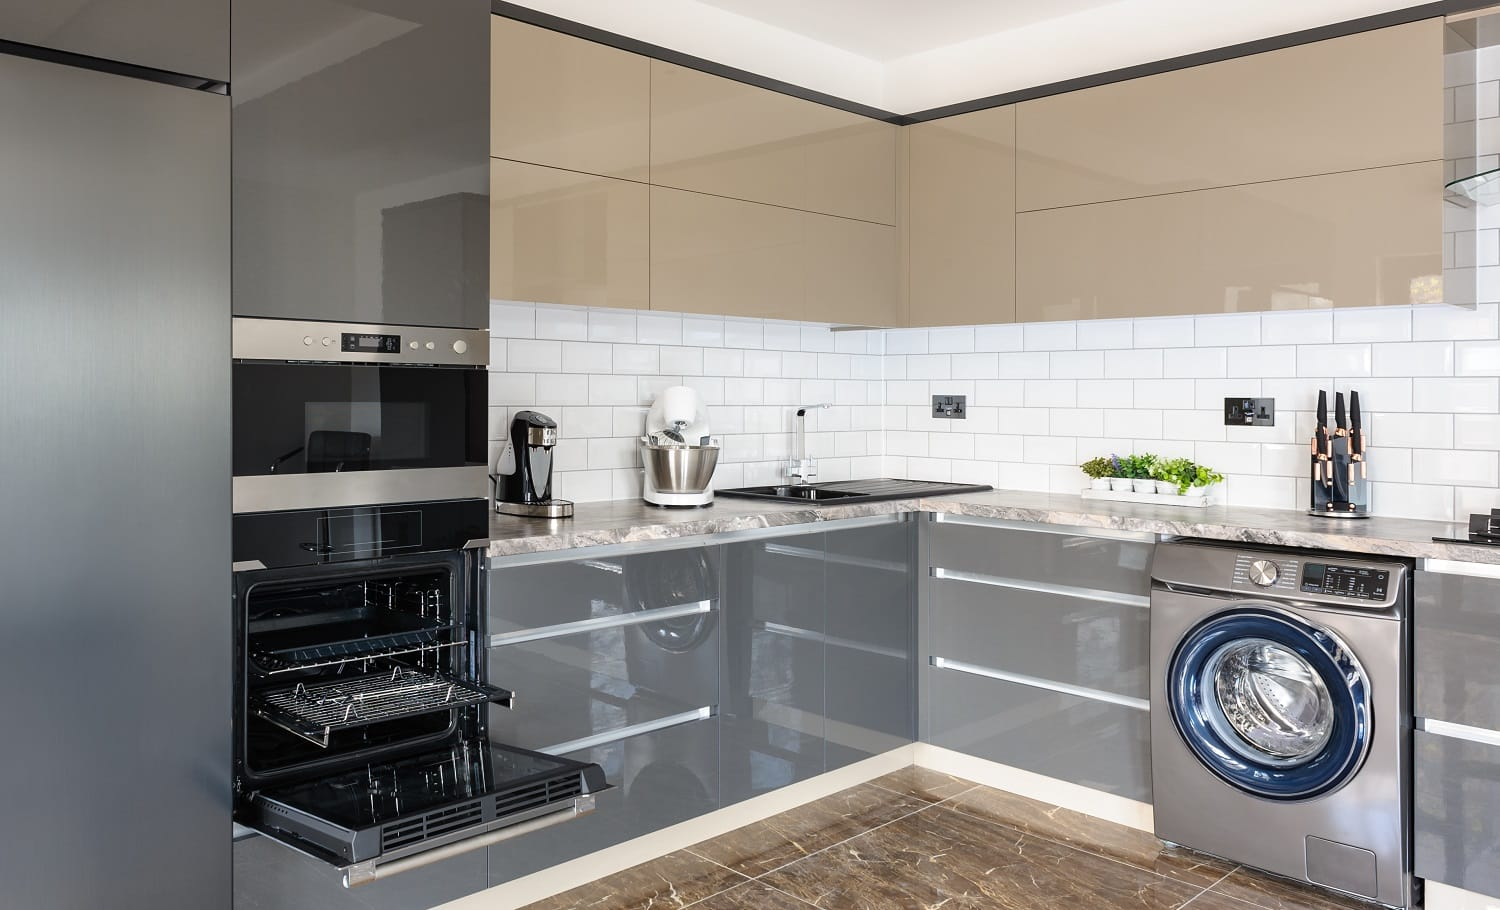 Spacious luxury well designed modern grey, beige and white kitchen with marble tiles floor. some lockers and door of electric oven are open